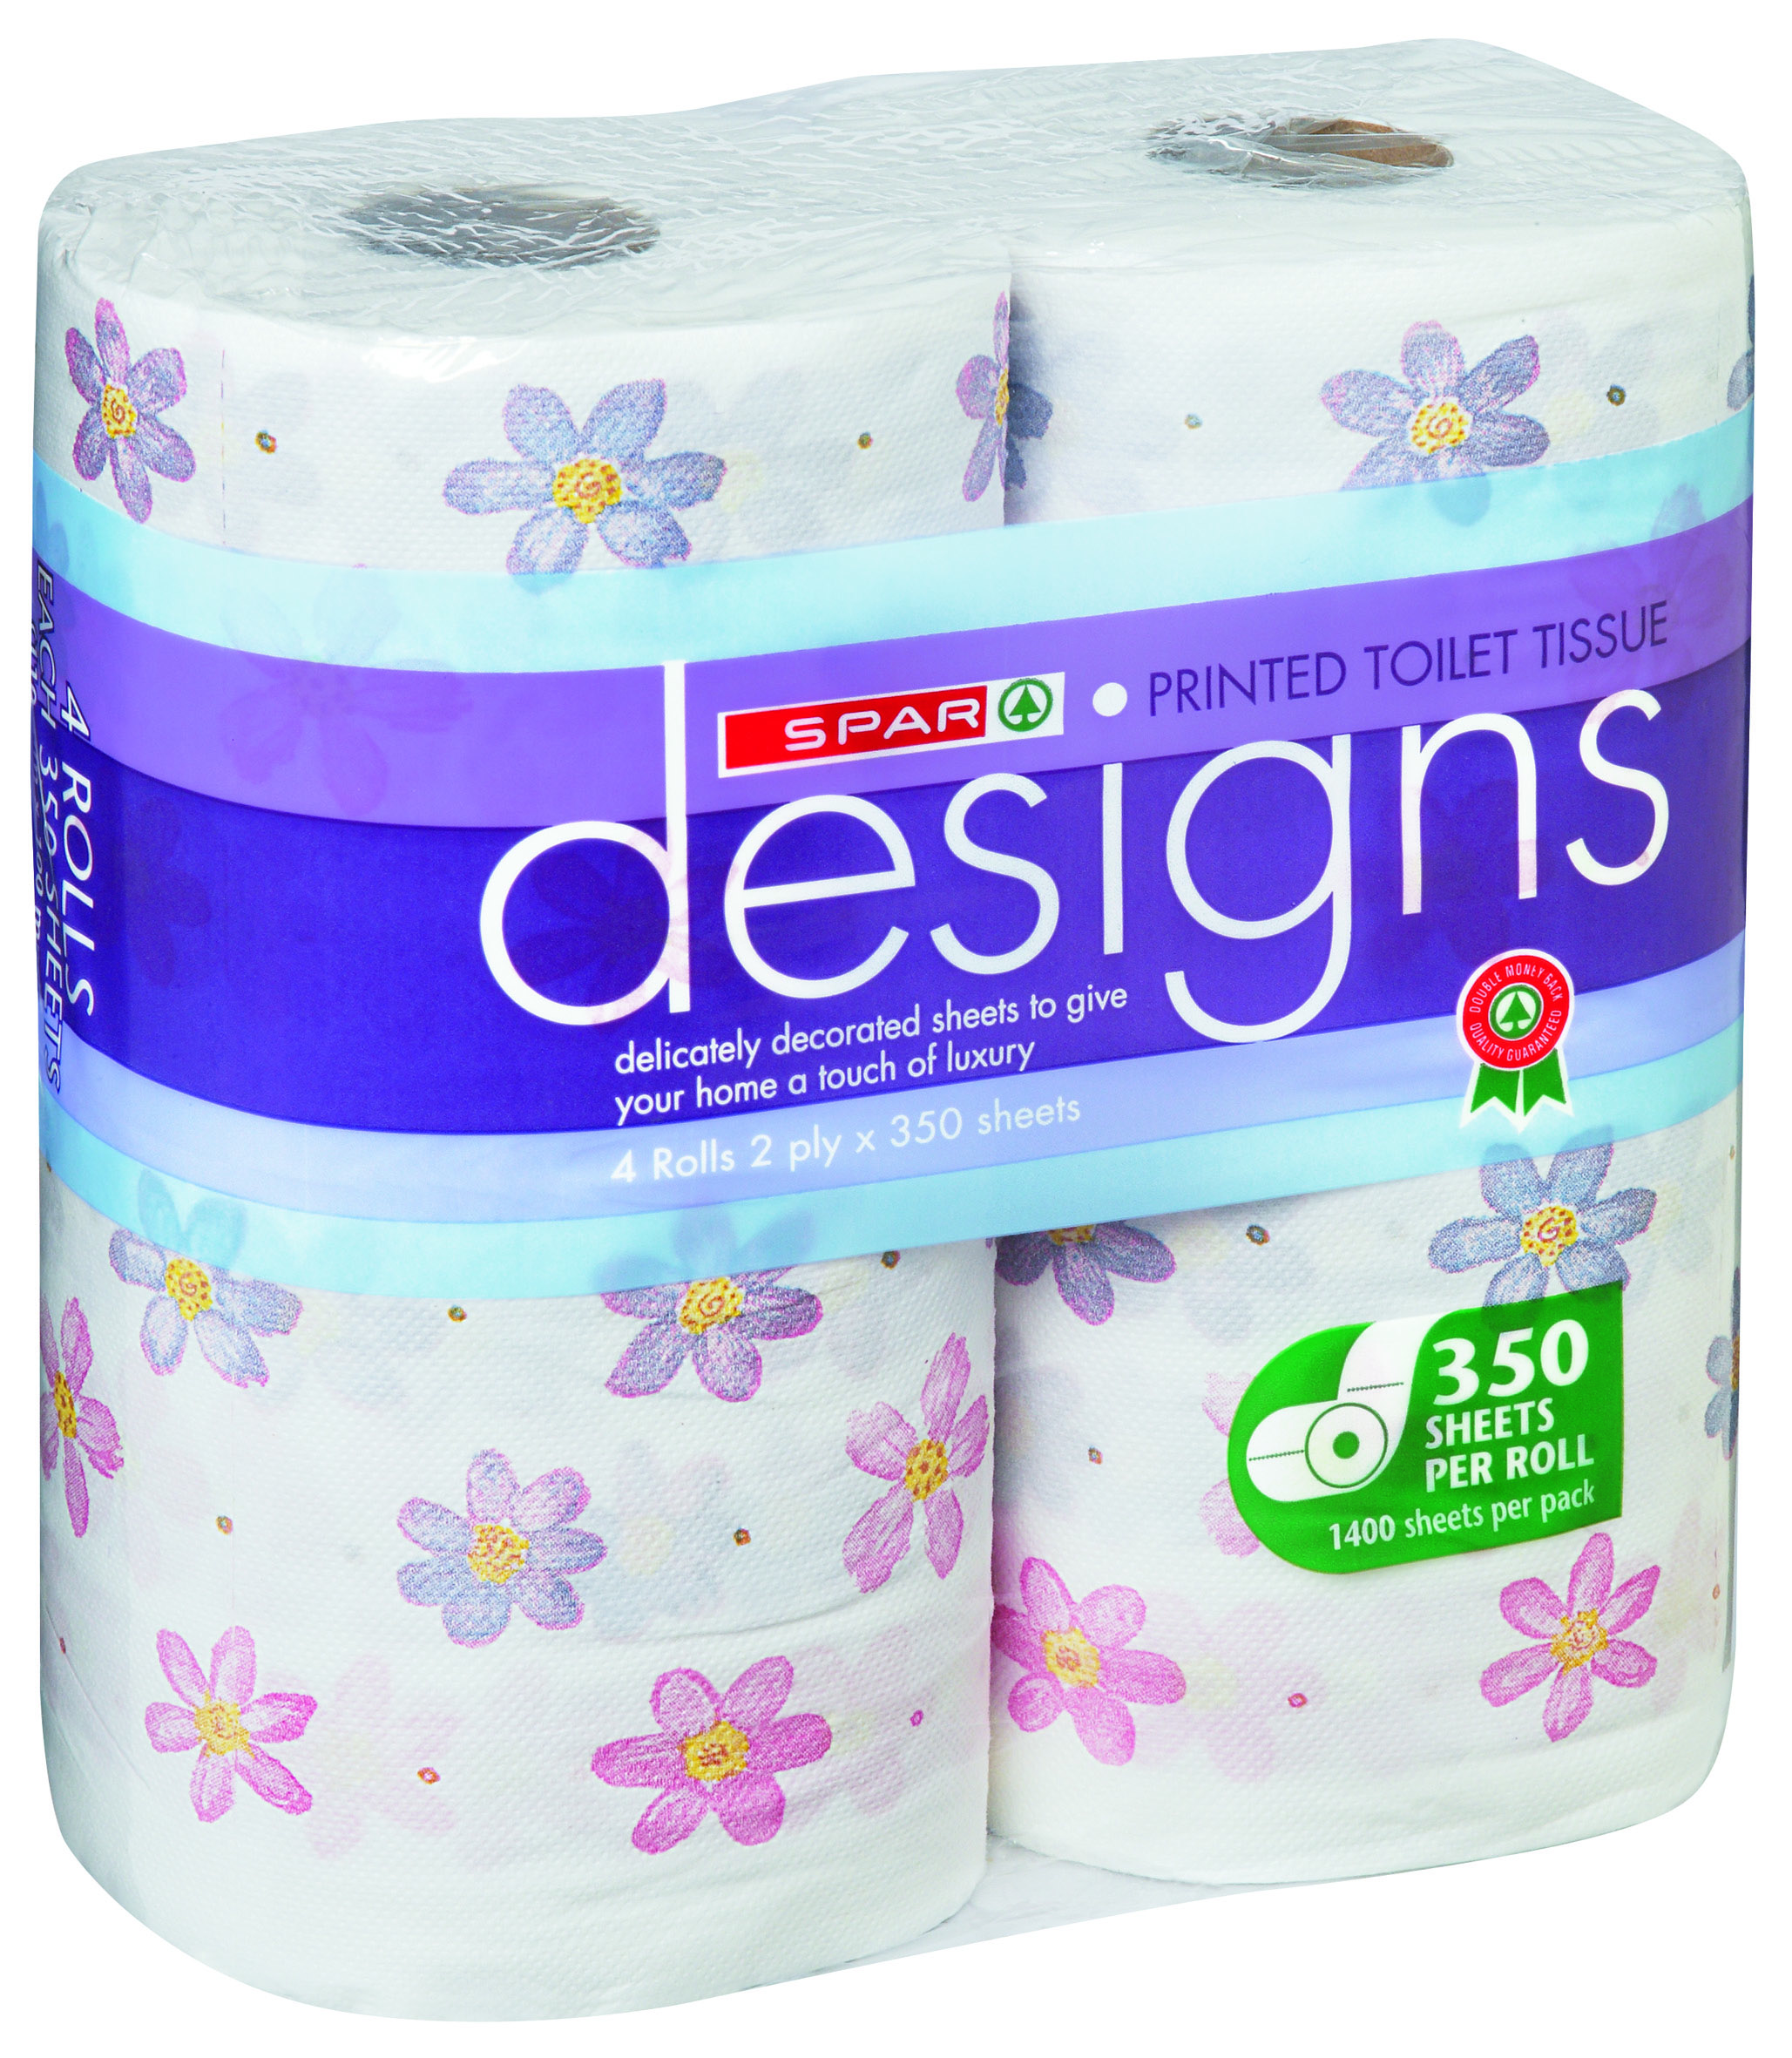 Toilet Tissue Printed Floral 2 Ply